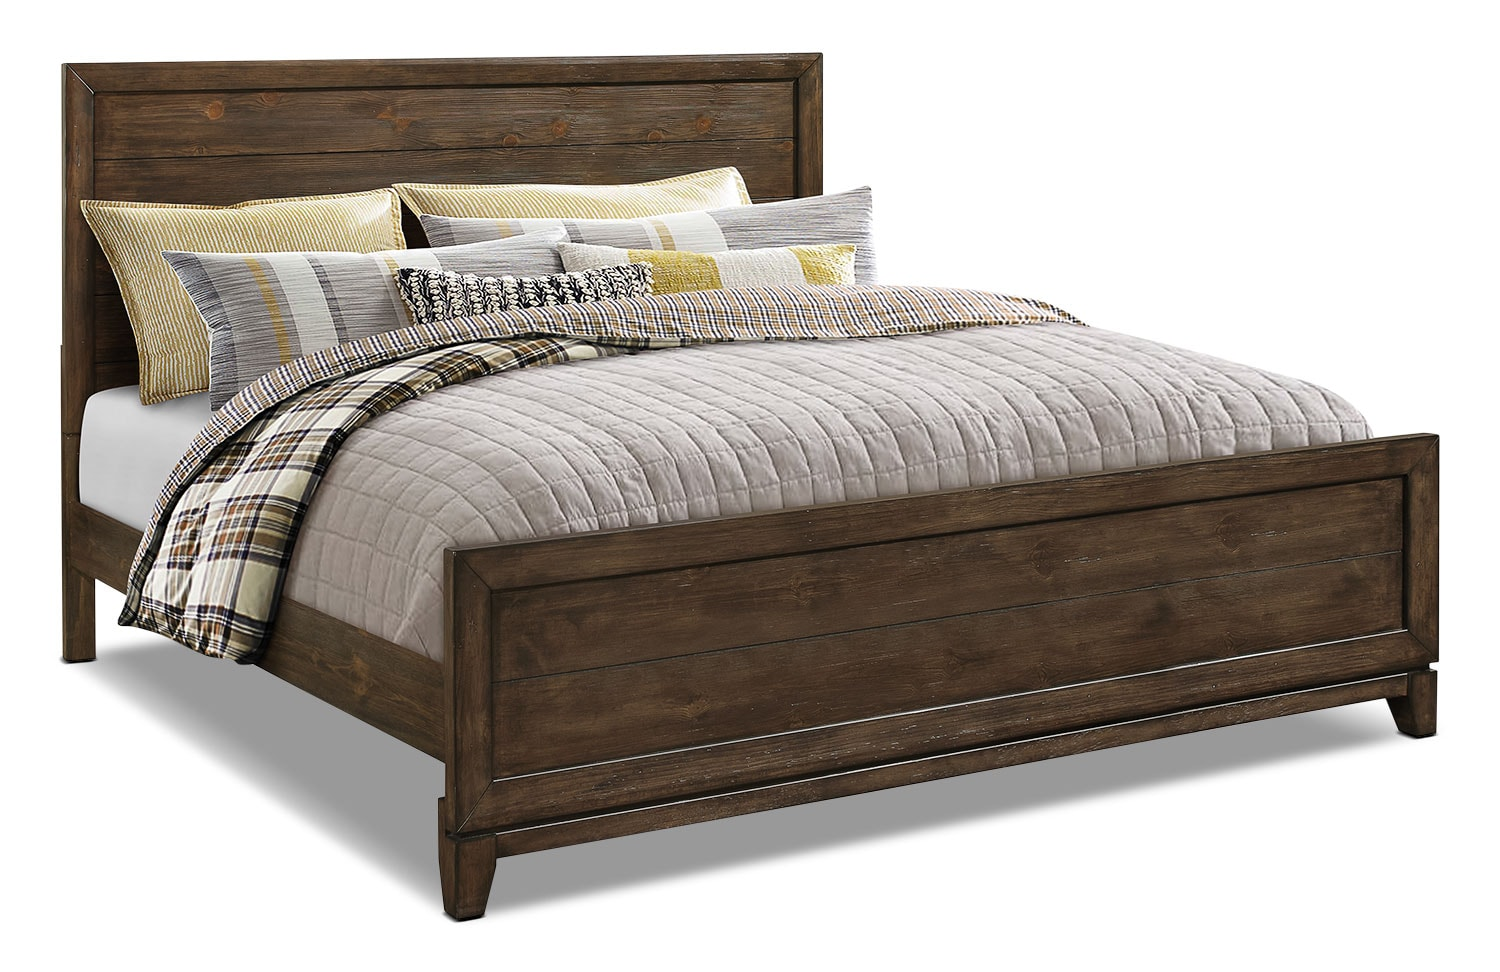 Tacoma King Bed